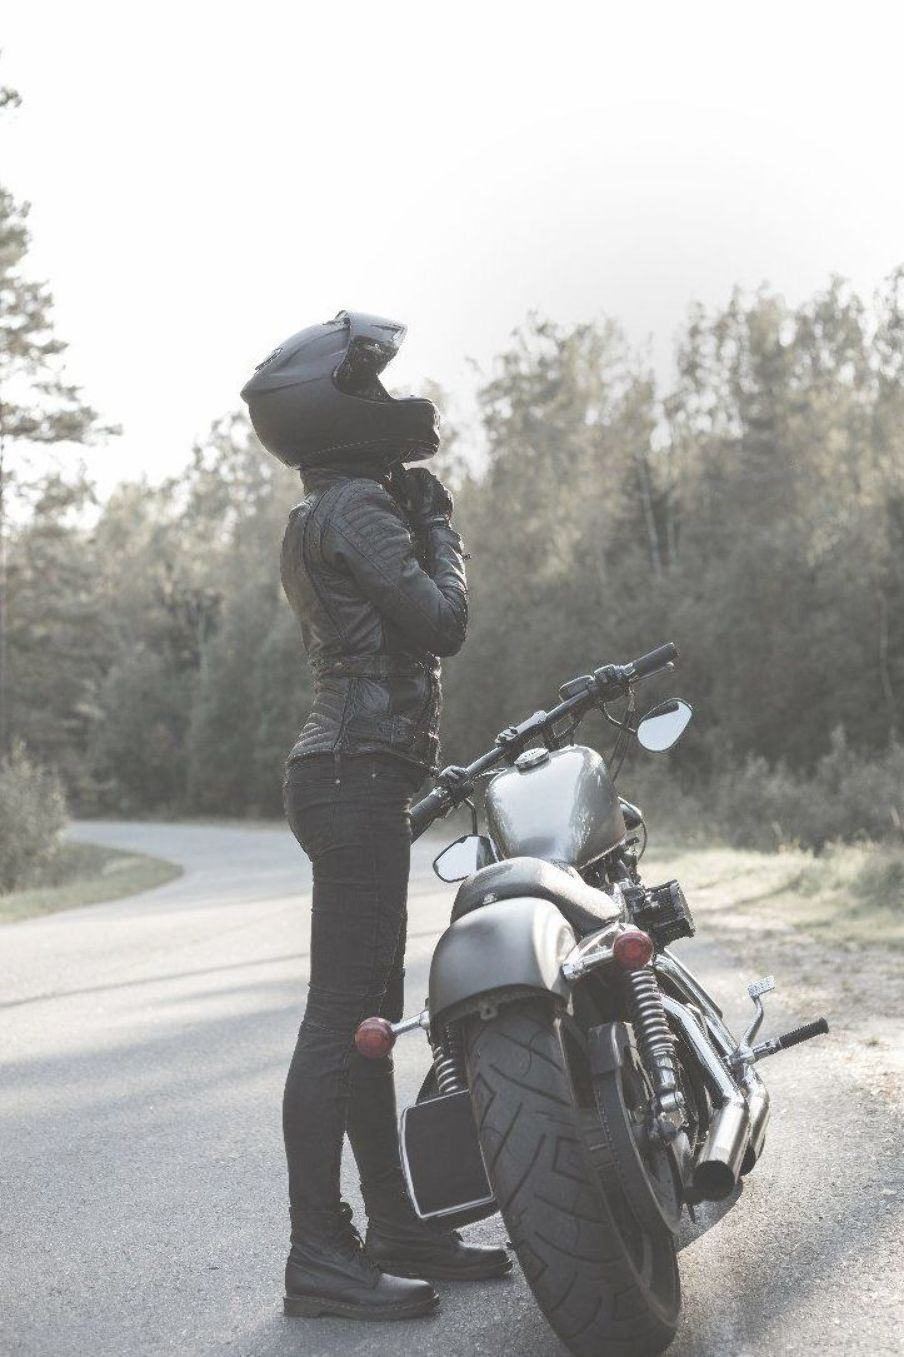 Female Motorcycle Rider With Images Motorcycle Women Female